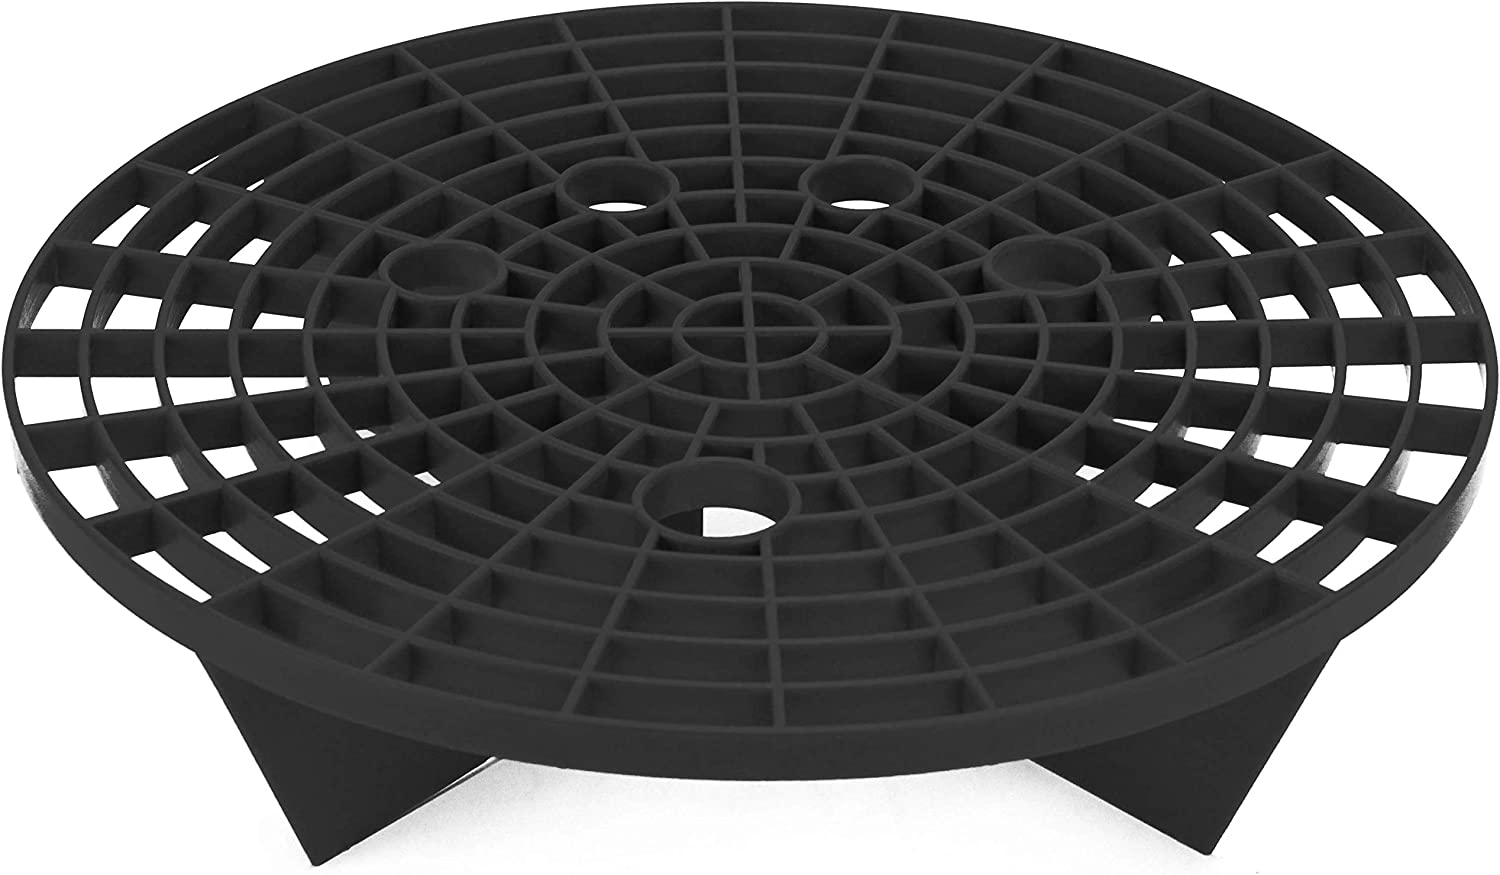 VIKING 923601 Bucket Insert Grit Trap, Black